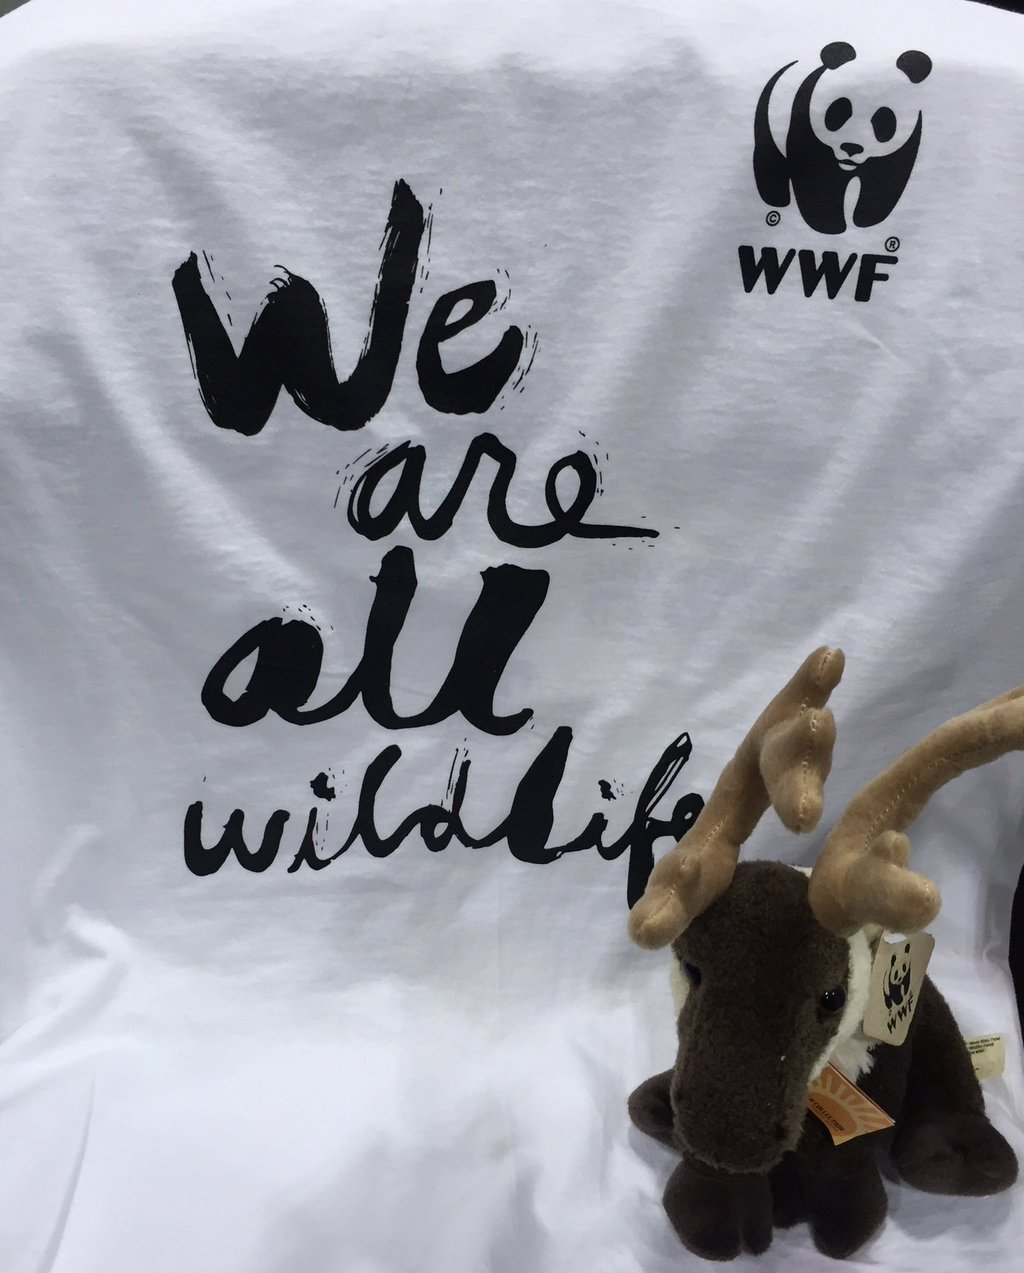 Custom t-shirt for World Wildlife Fund organization printed for the CN Tower climb.